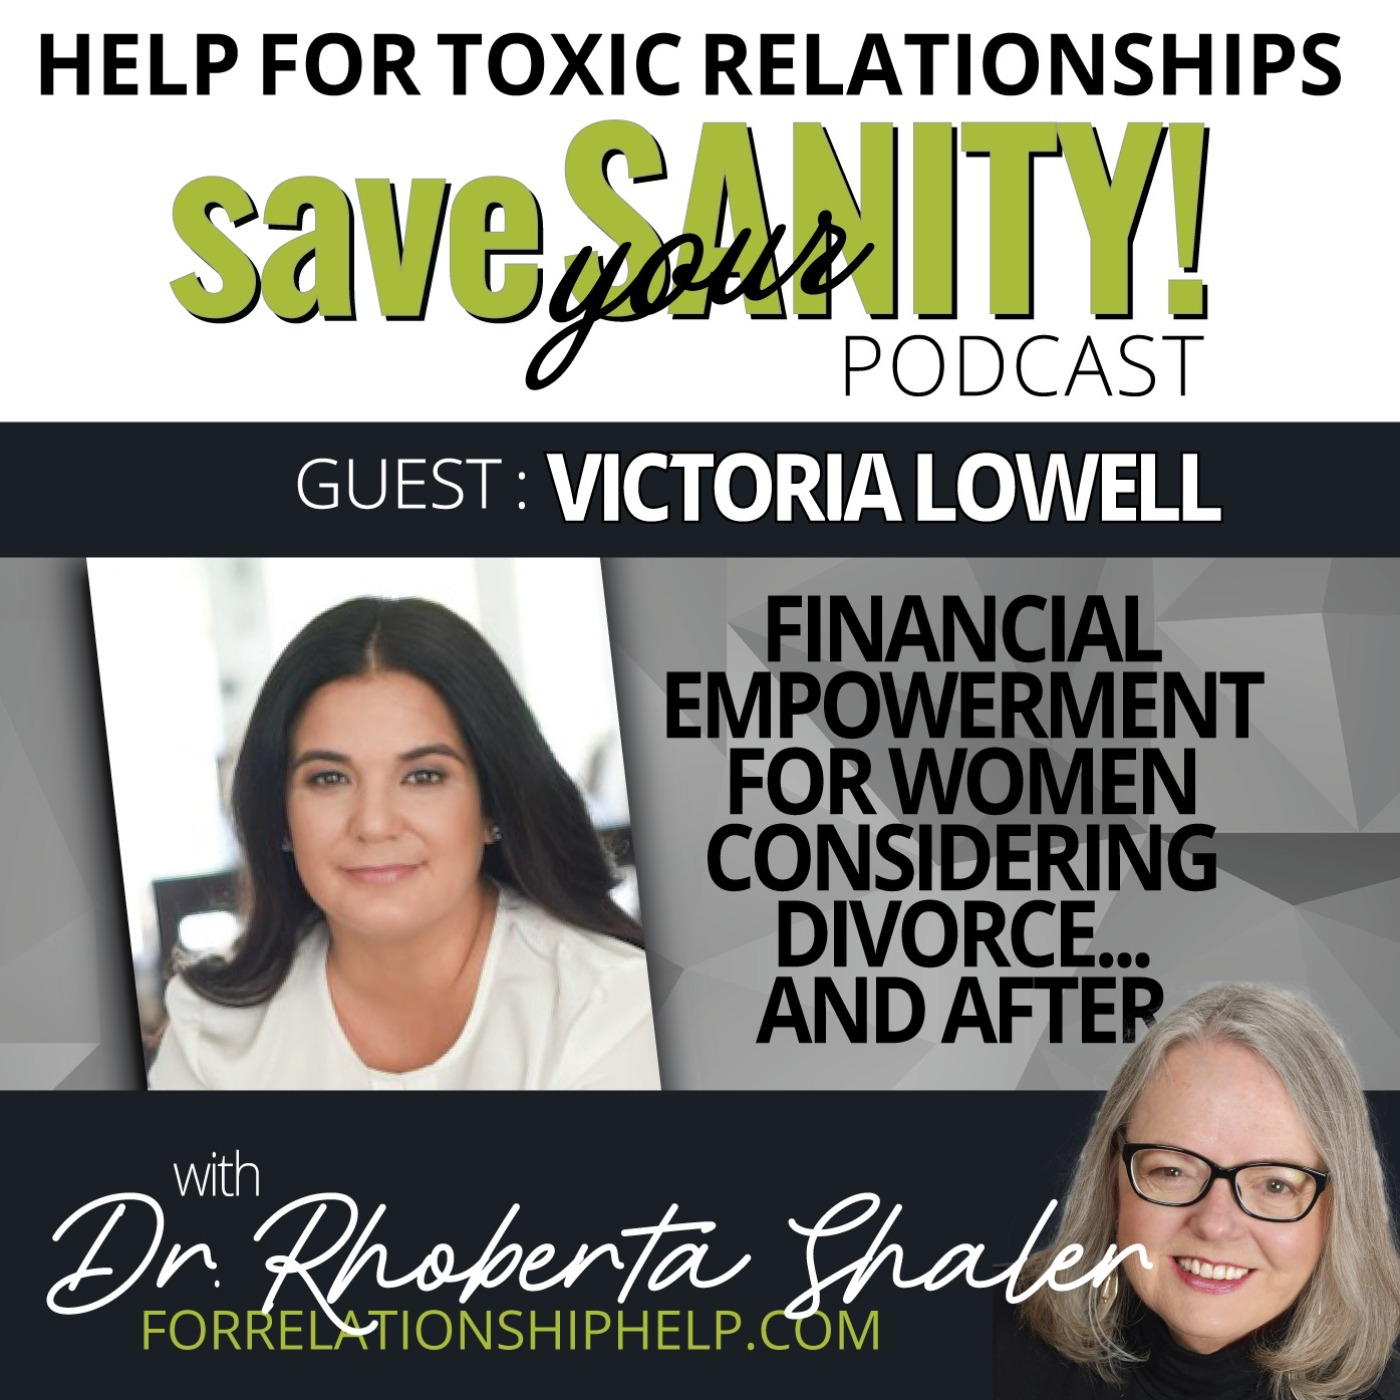 Financial Empowerment For Women Considering Divorce...And After   Guest: Victoria Lowell